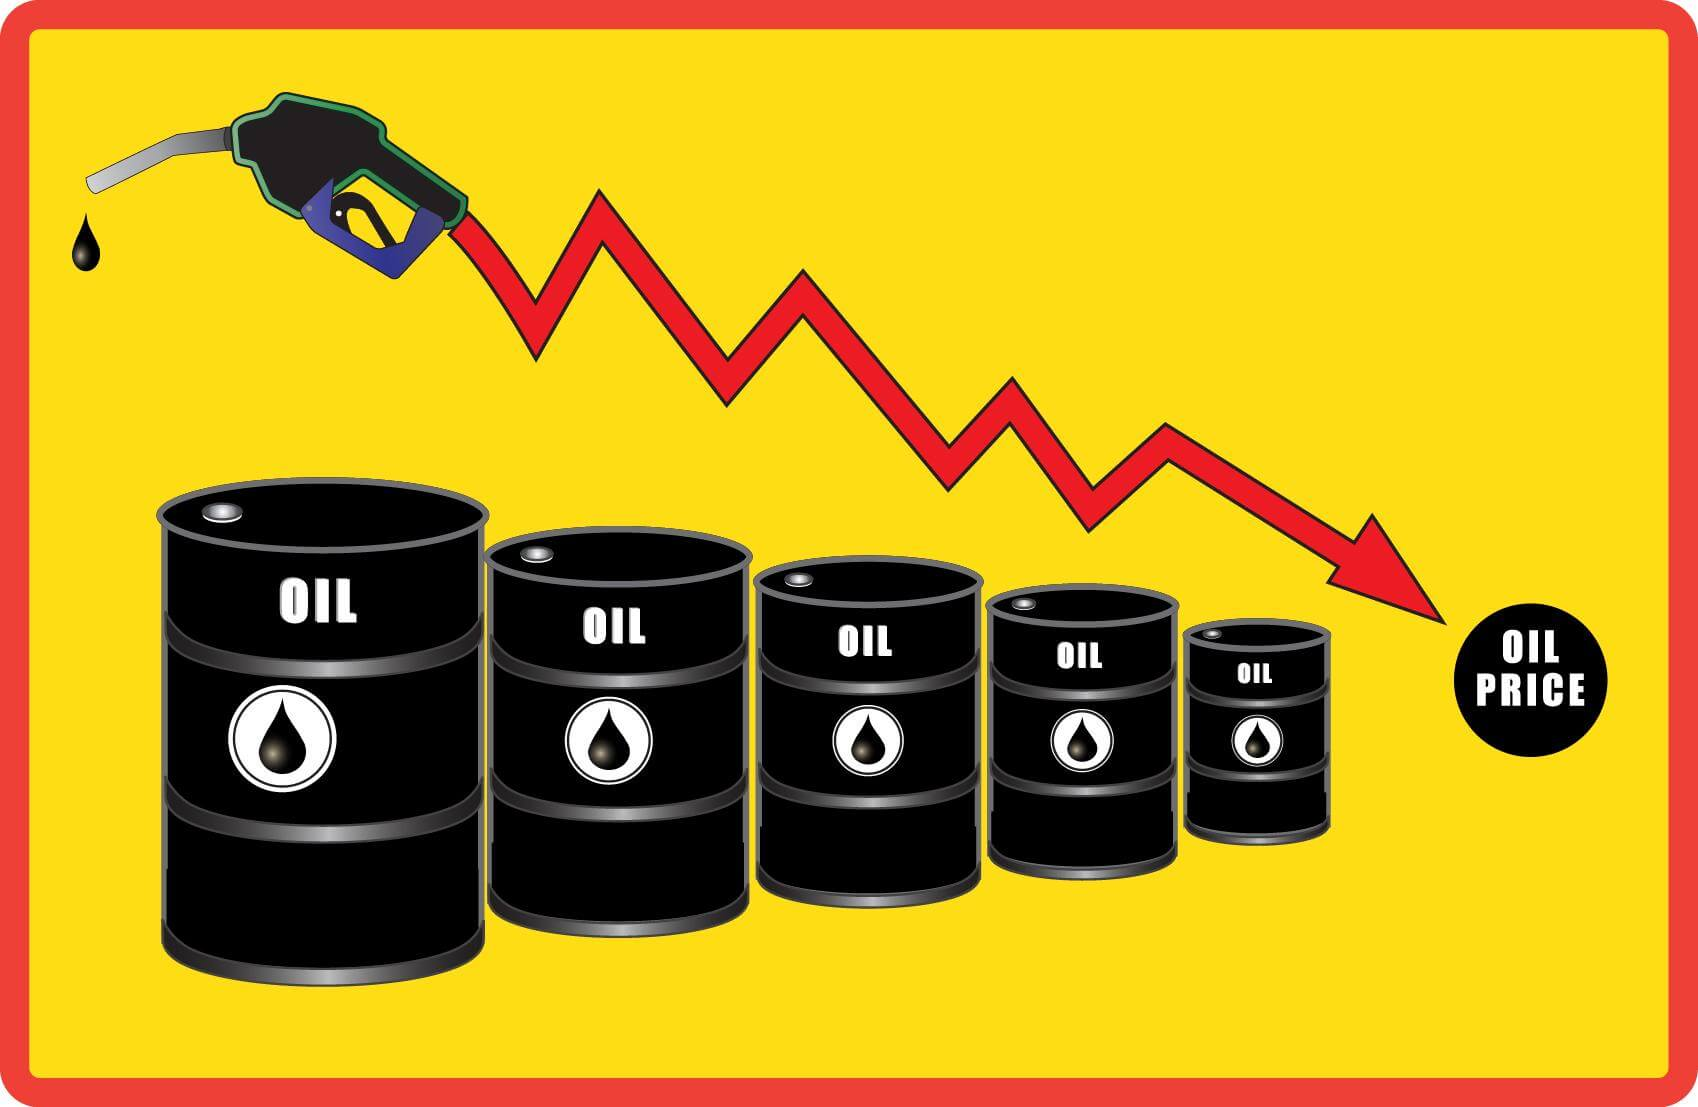 Major Tax Change Needed Urgently to Counter Falling Oil Price and Save Investment and Jobs